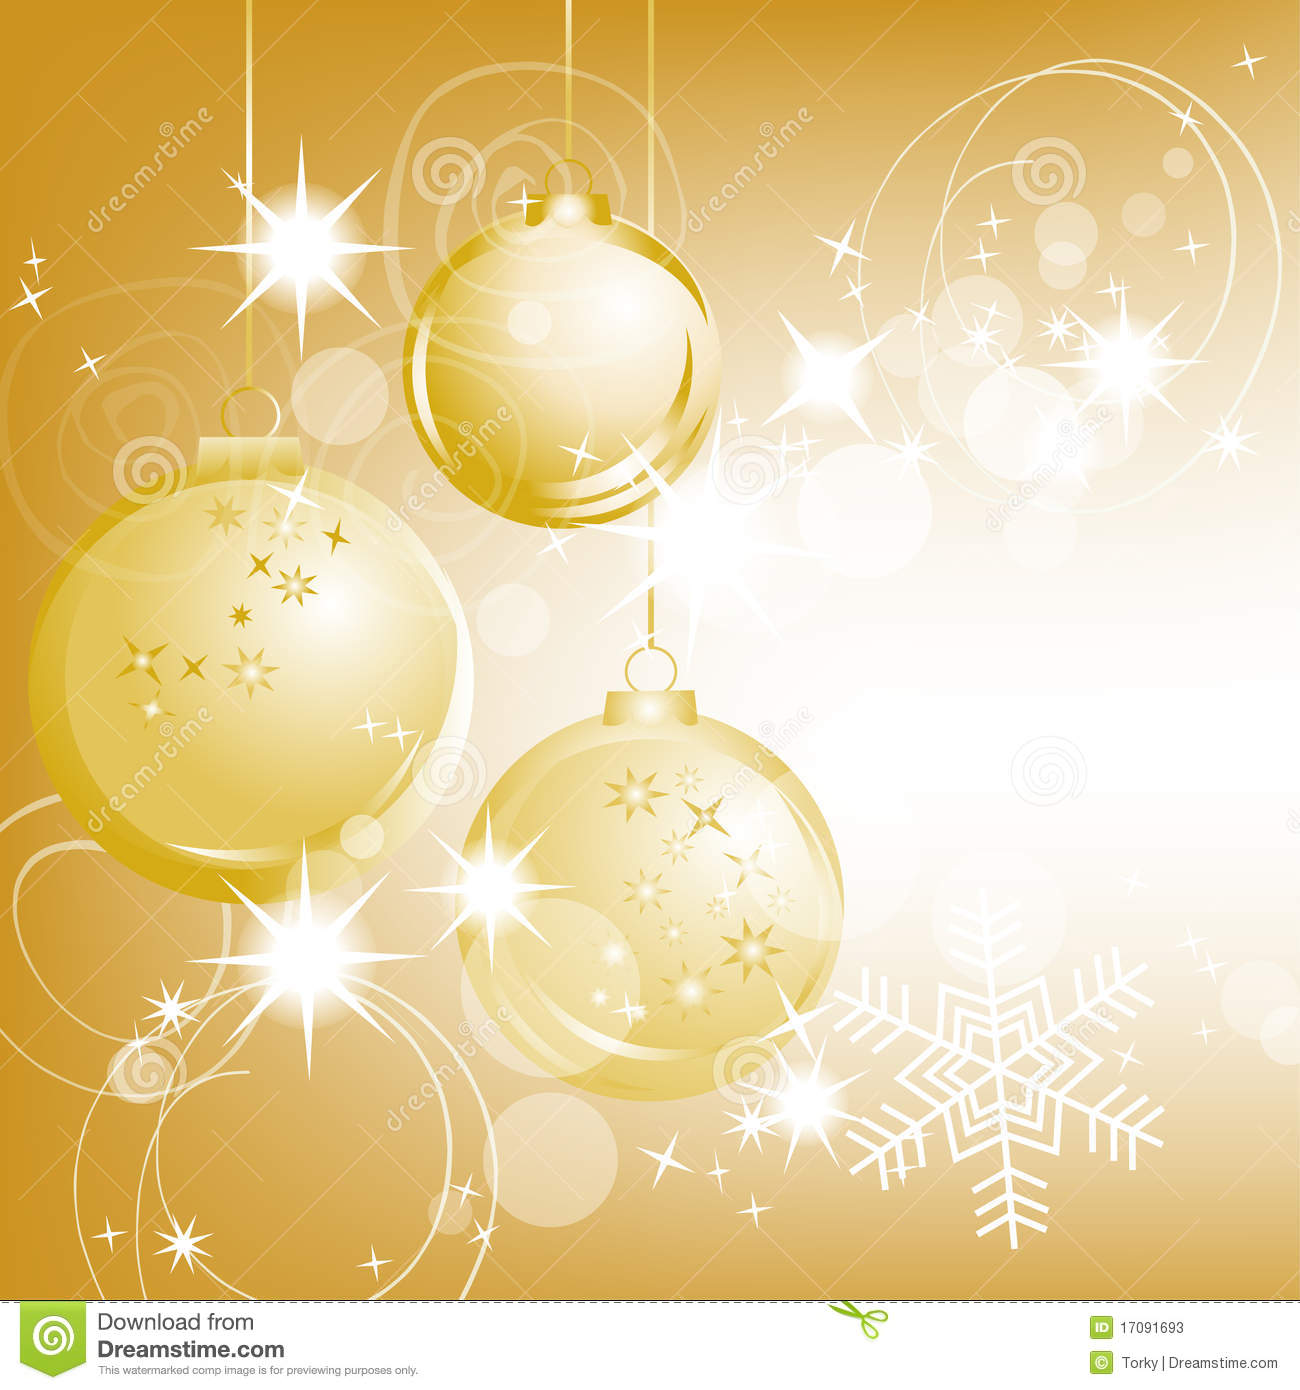 golden christmas background with - photo #32